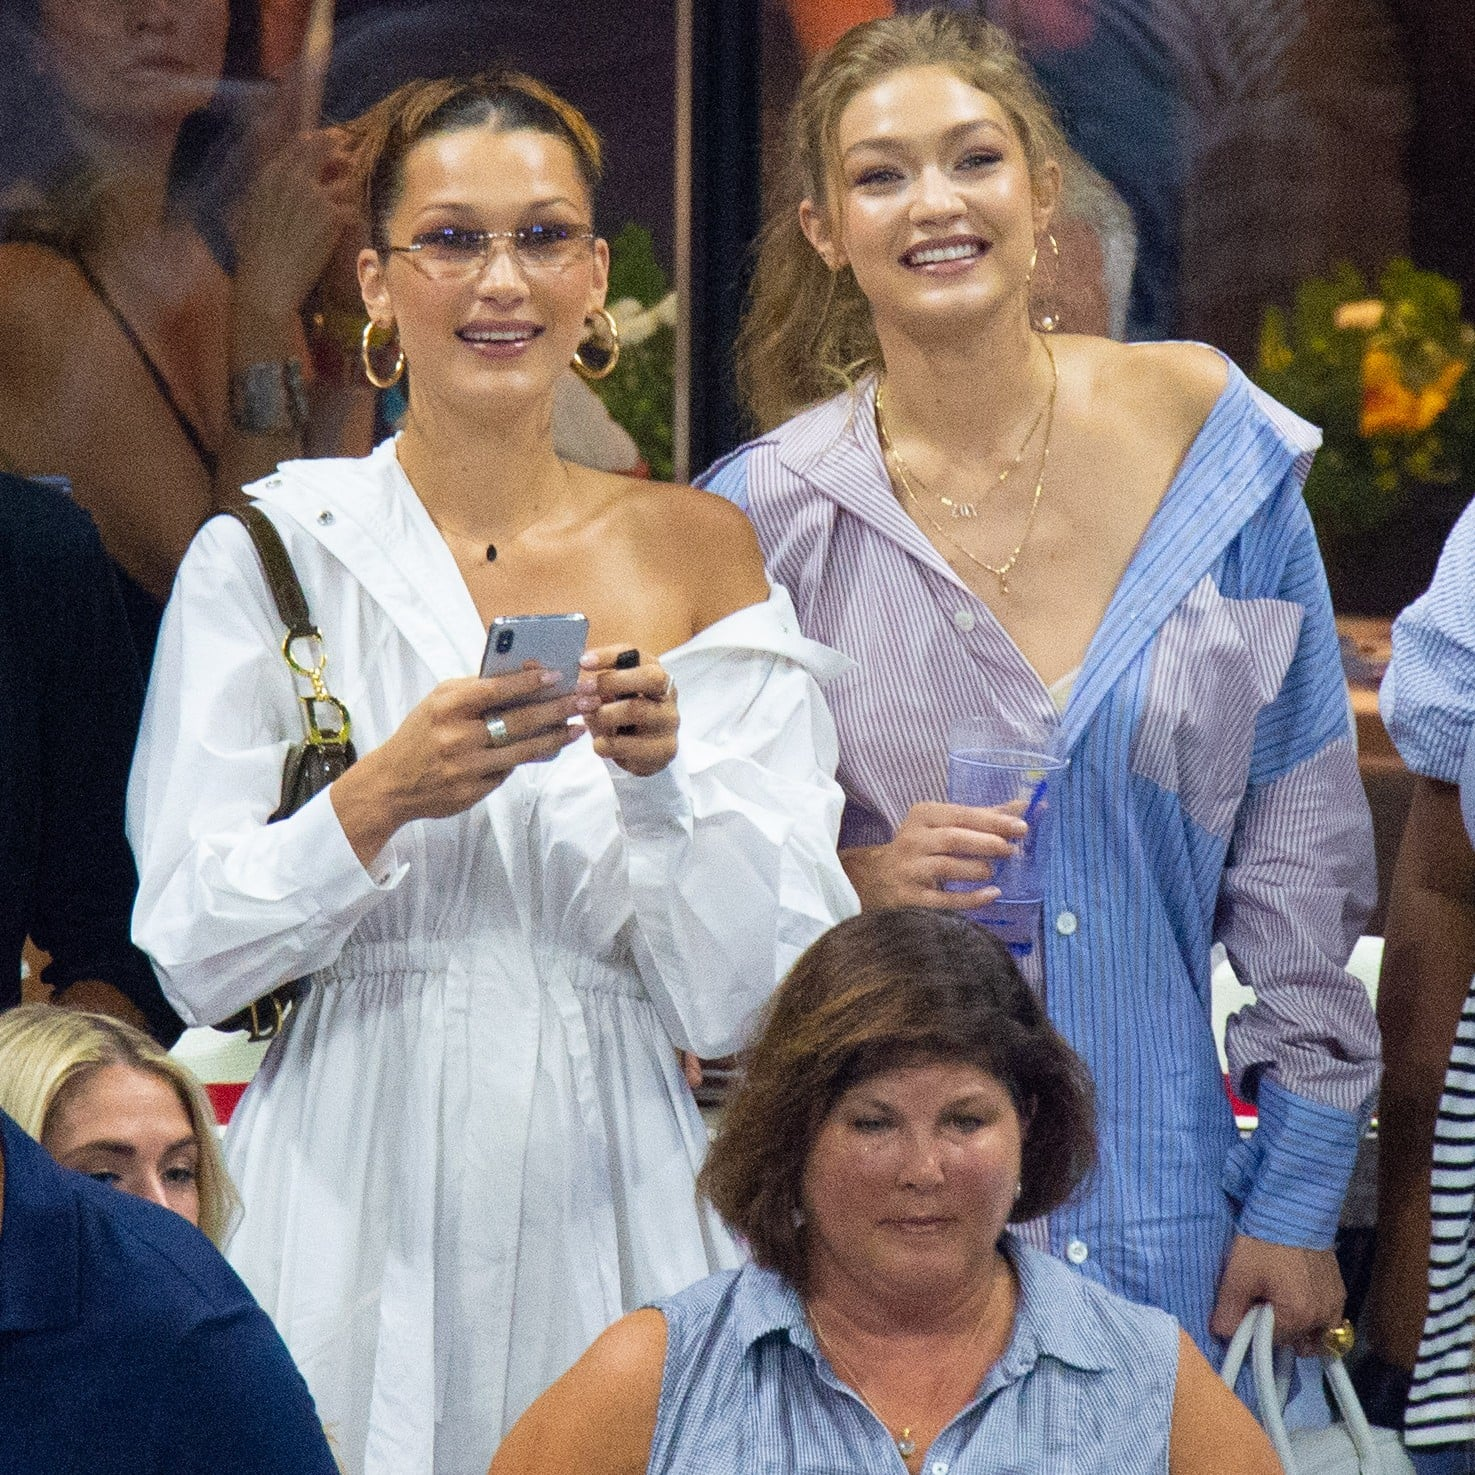 00b50612f52 Gigi and Bella Hadid at US Open in Button-Downs 2018